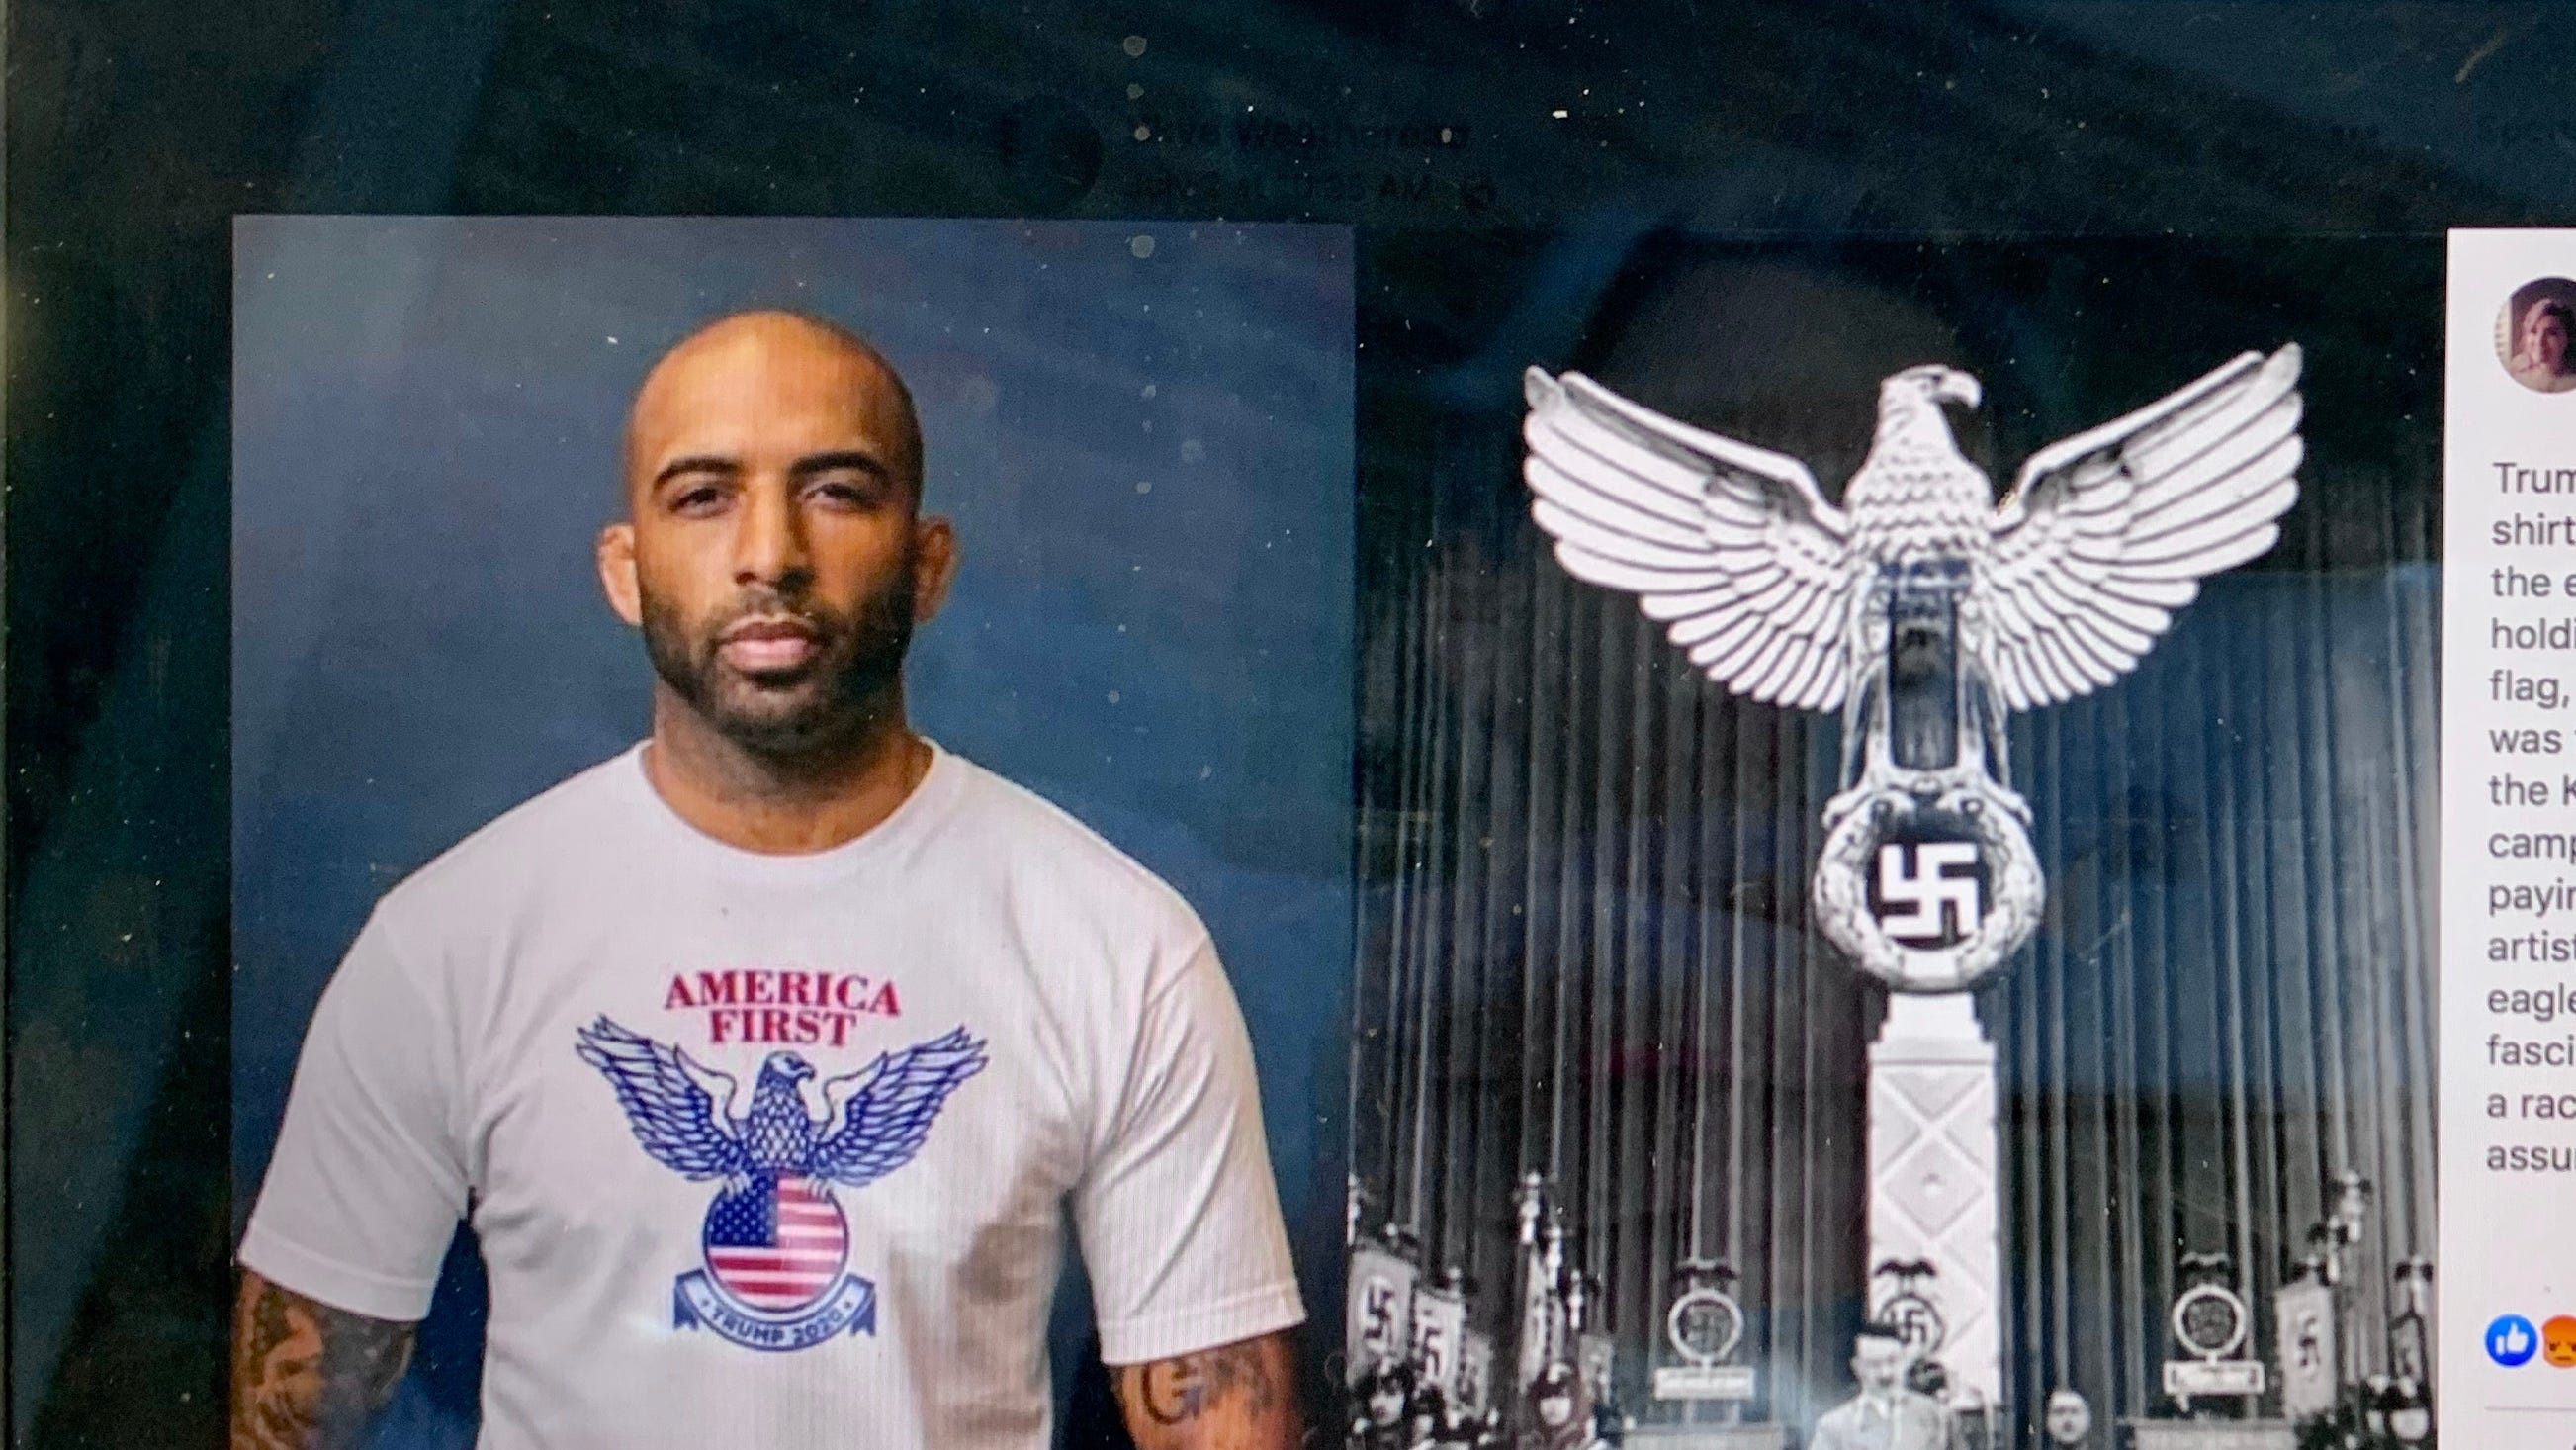 Fact check: Trump campaign accused of T-shirt design with similarity to Nazi eagle